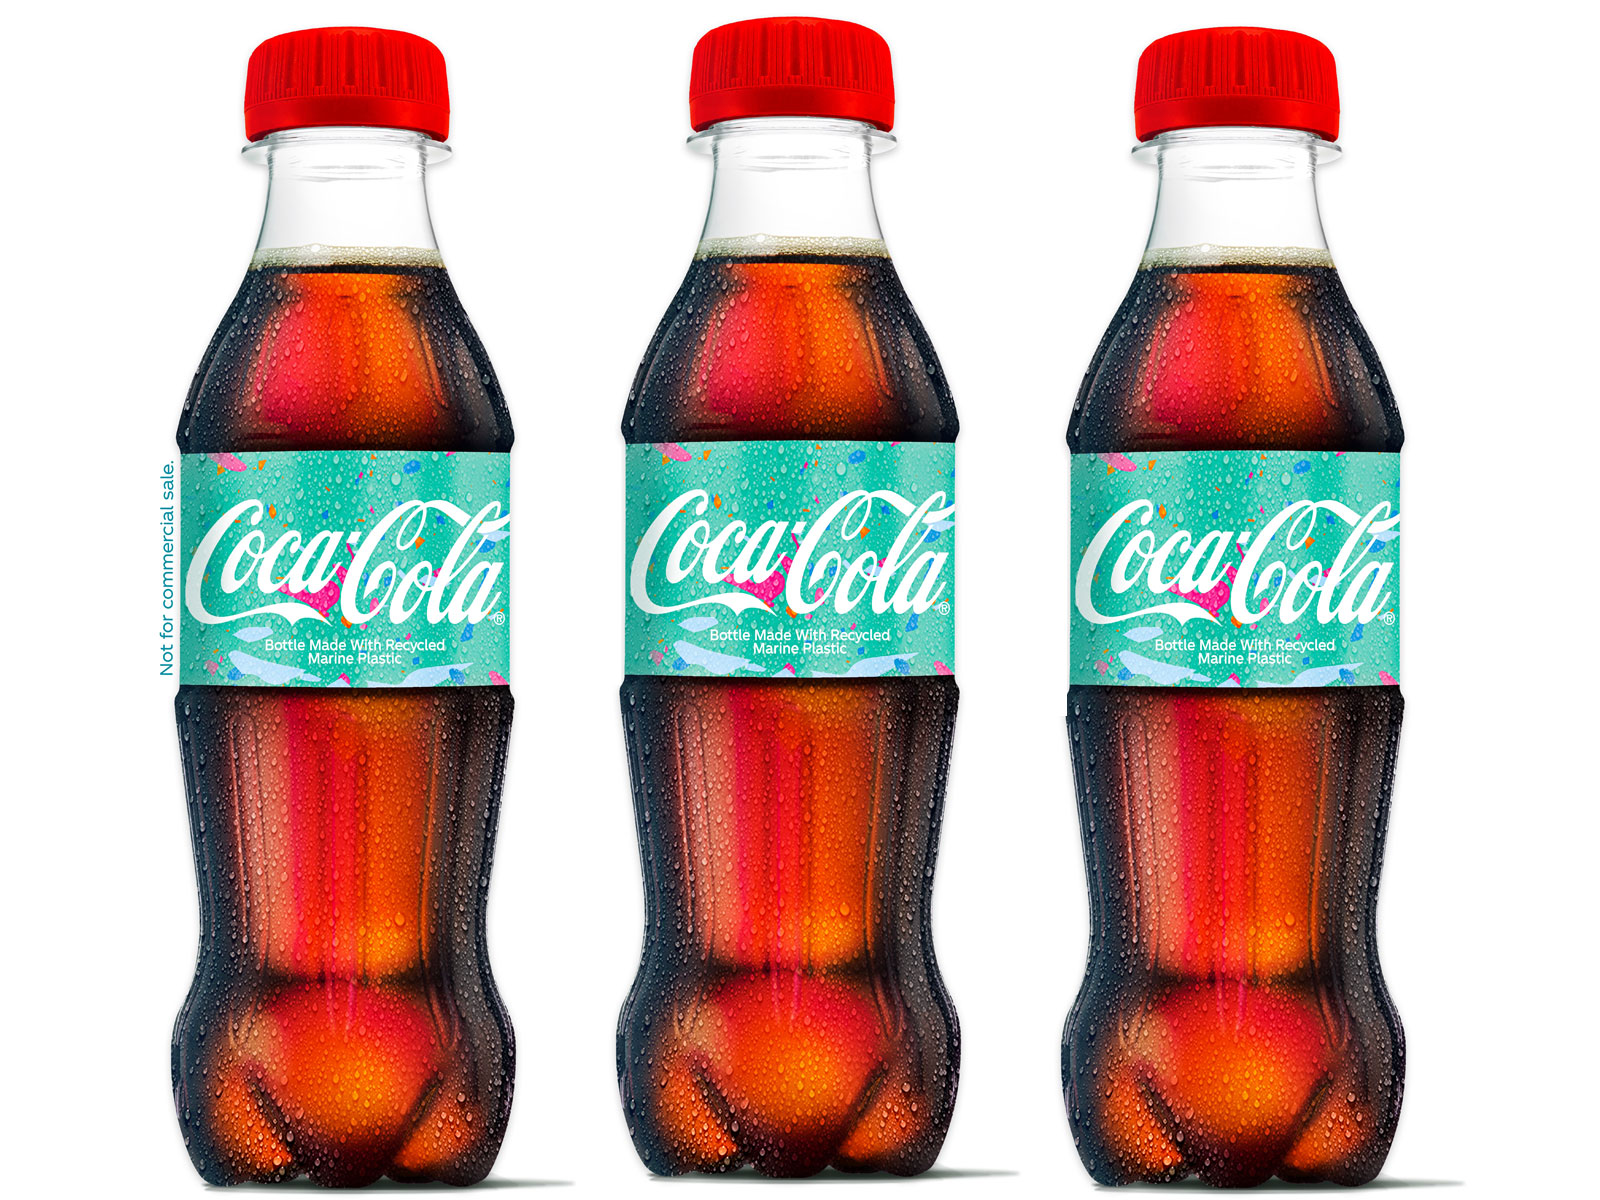 Coca-Cola Is Making New Bottles Using Recycled Plastic from the Ocean